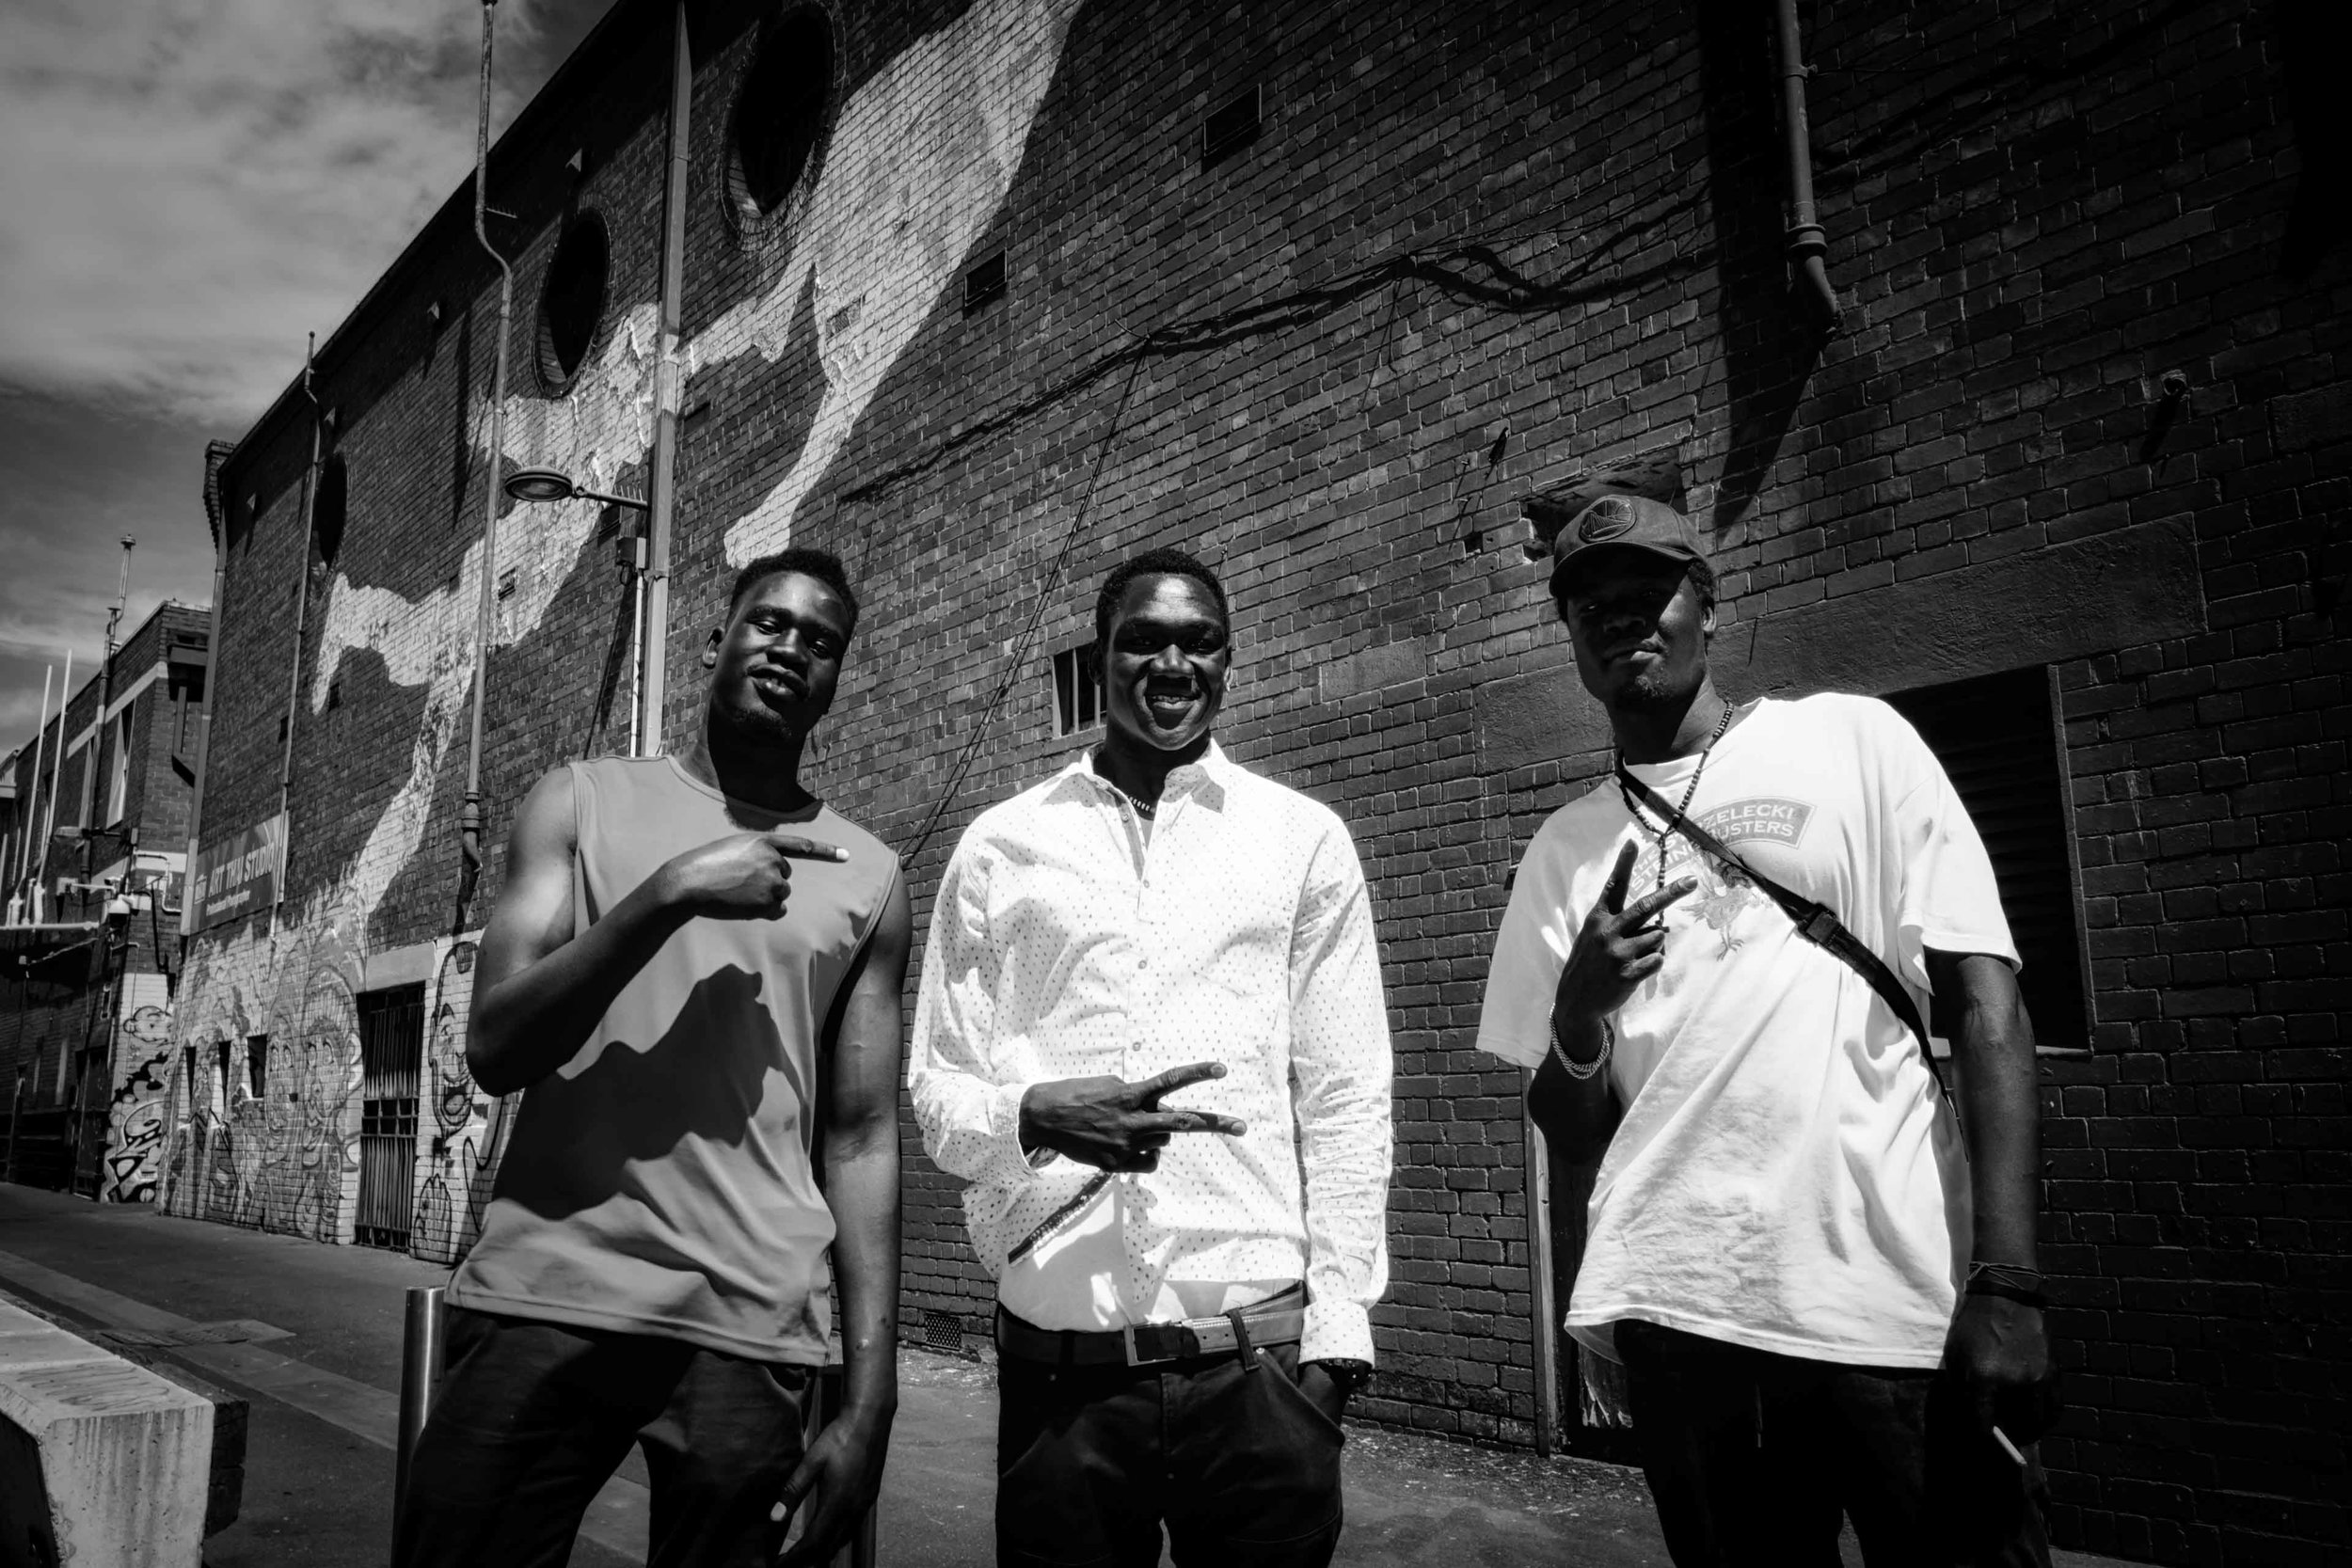 In this image is 29-year-old Torit Chol Bol (centre) with his friends Jay and Pablo. Chol Bol hopes for compassion, unity and equality in the world. 'What makes us human is what we feel in our hearts. When we see a homeless person, it is what is in our hearts, and our compassion that makes us go and help that person. We see people as people, and it is not based on the colour of their skin.'  Chol Bol told me about his experiences in jail, and how his time there have changed his life. Currently working in construction, he works hard to find his feet, helping his mum and his younger sisters, and in guiding other youth in the area. 'Many young people here, they don't have a father figure to guide them. I lost my father back in South Sudan - he died in the war. So nowadays, I look out for the young ones on the streets and I try to be a positive influence for them.'  Through chatting and having a stroll with him through his neighbourhood, his resilience and his compassion really shines through. Seemingly stoic on the outside, he speaks with incredible warmth and honesty. 'I really love to express myself through music,' he says, 'I'm going to title my next album 'unbroken'. When you have been where I am, people try to break you. I must remain strong, and not let that happen'.